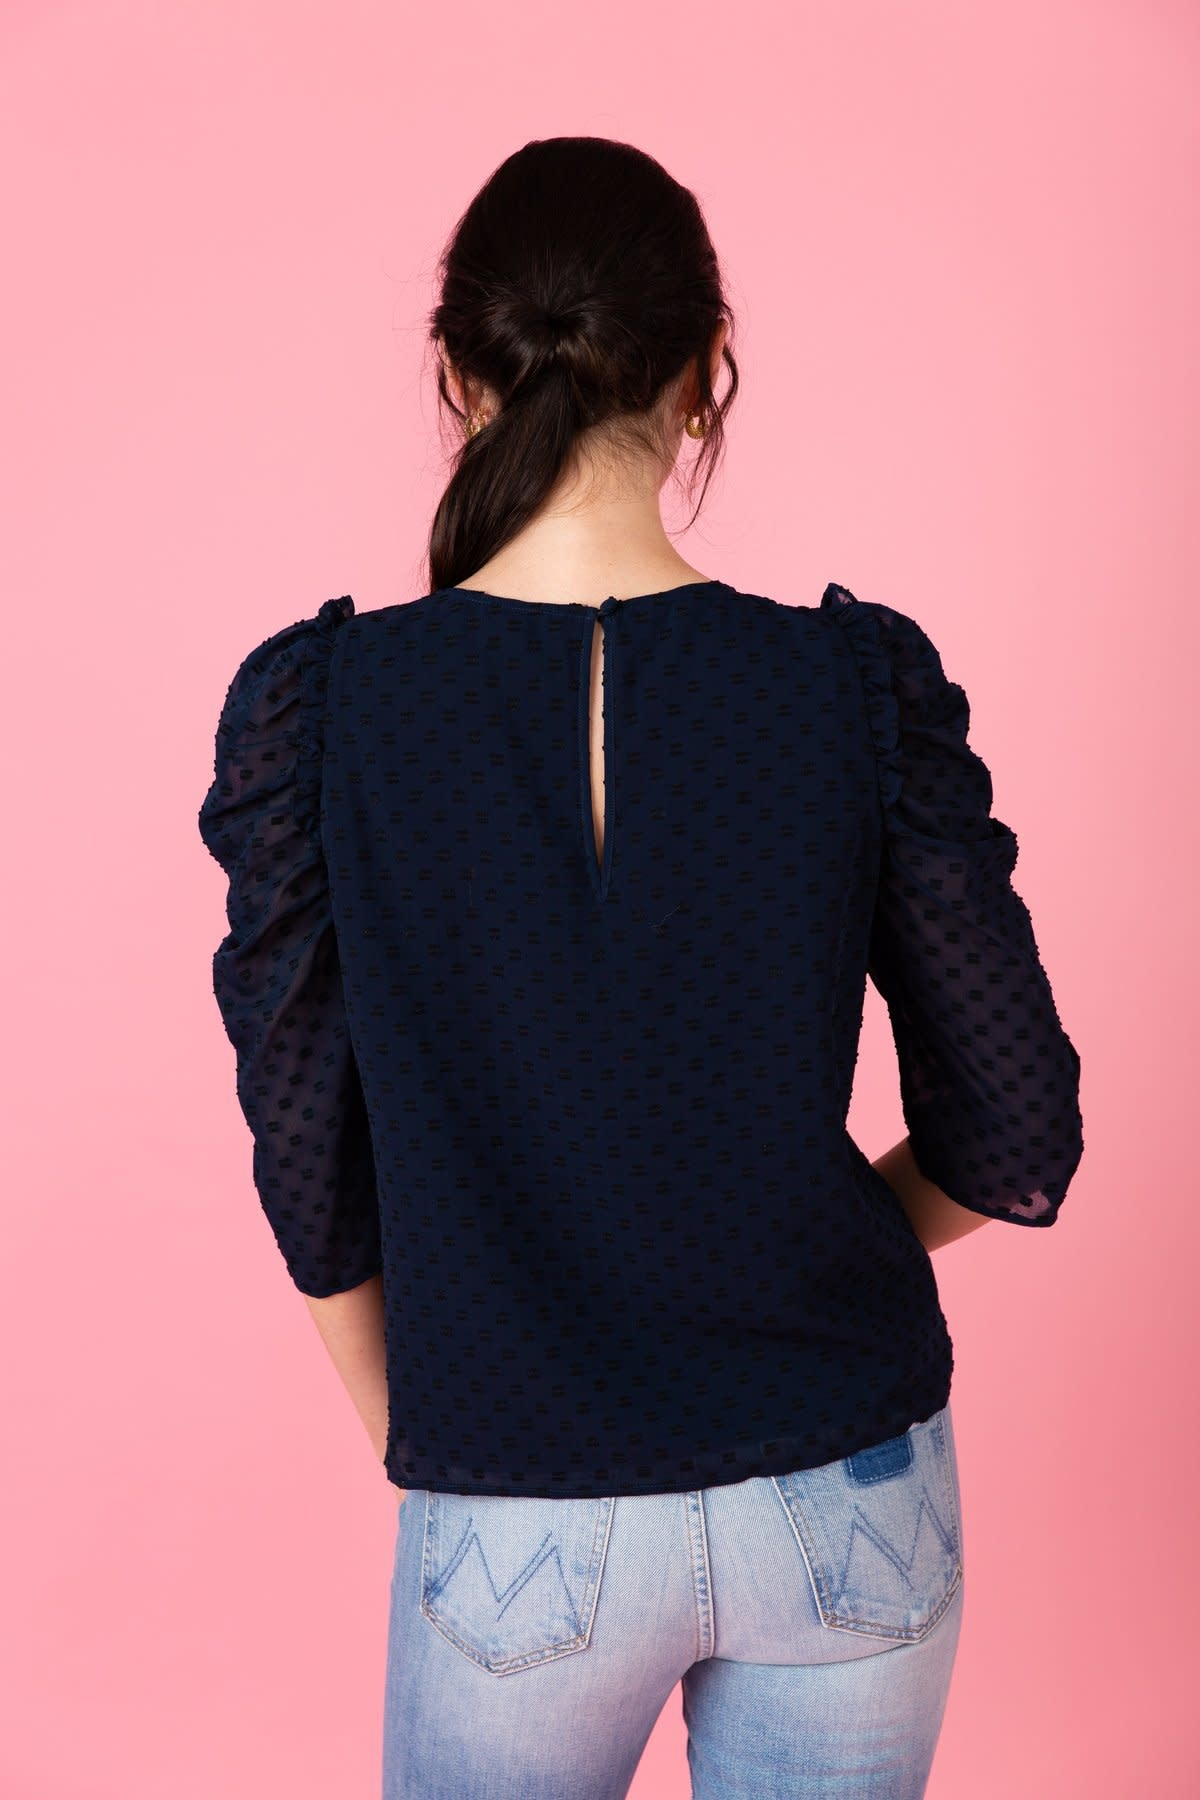 Crosby By Mollie Burch Nightfall Lurie Top